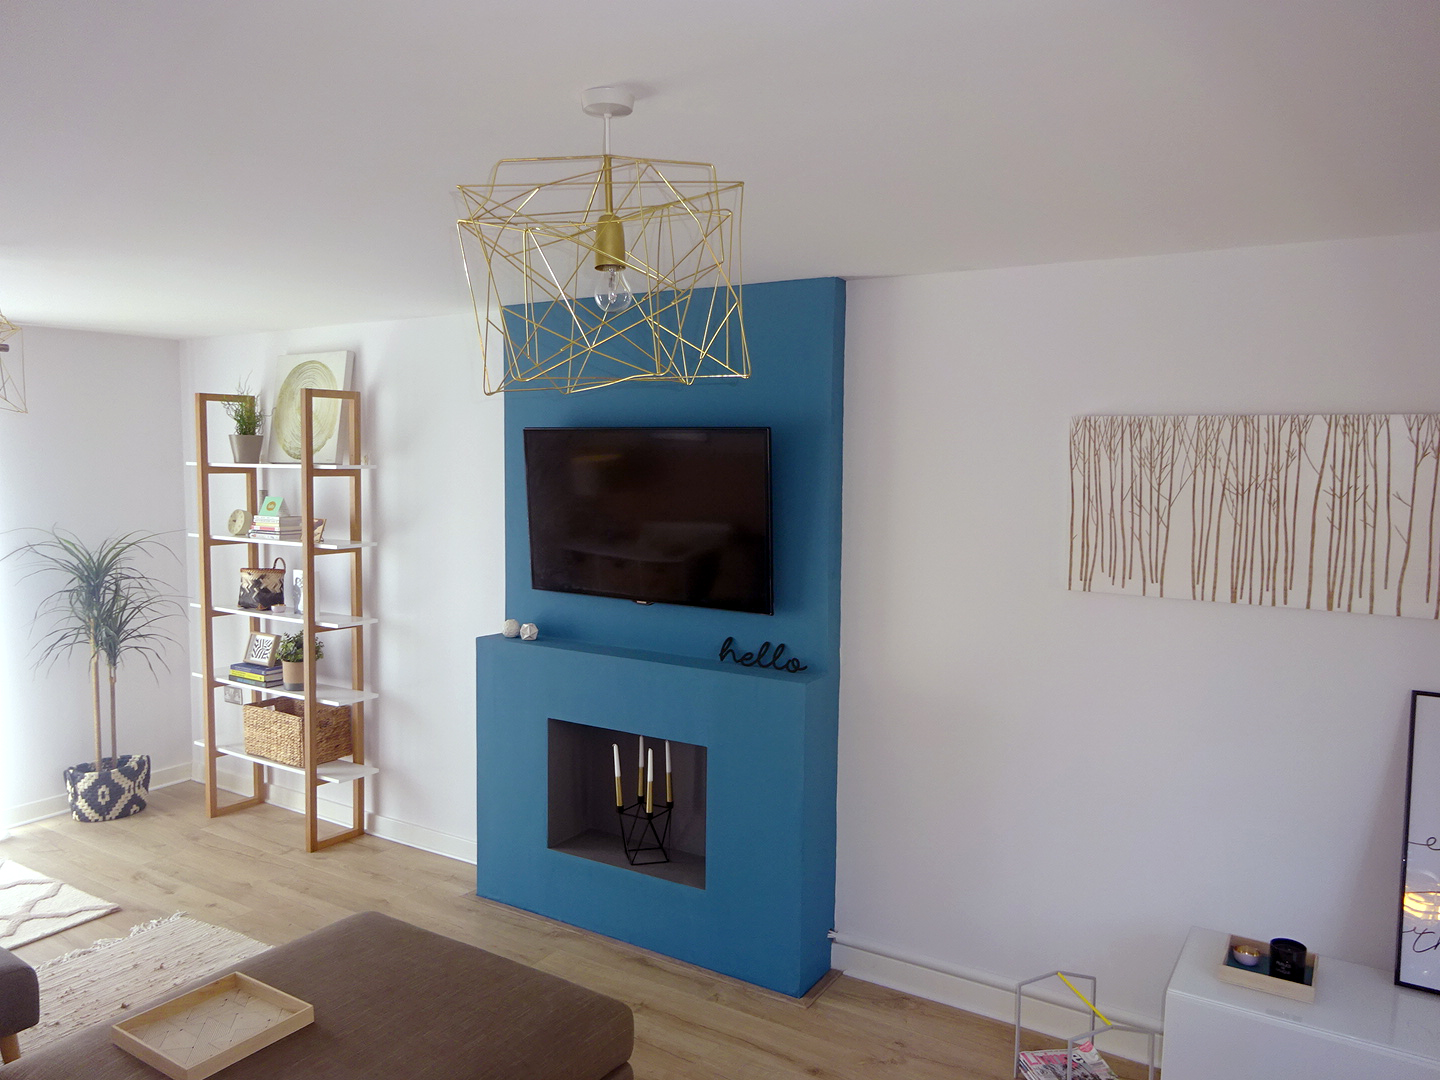 The living room now has a focal point with the teal fire surround. All the accessories around it are brass, black/white or oak to complement it.